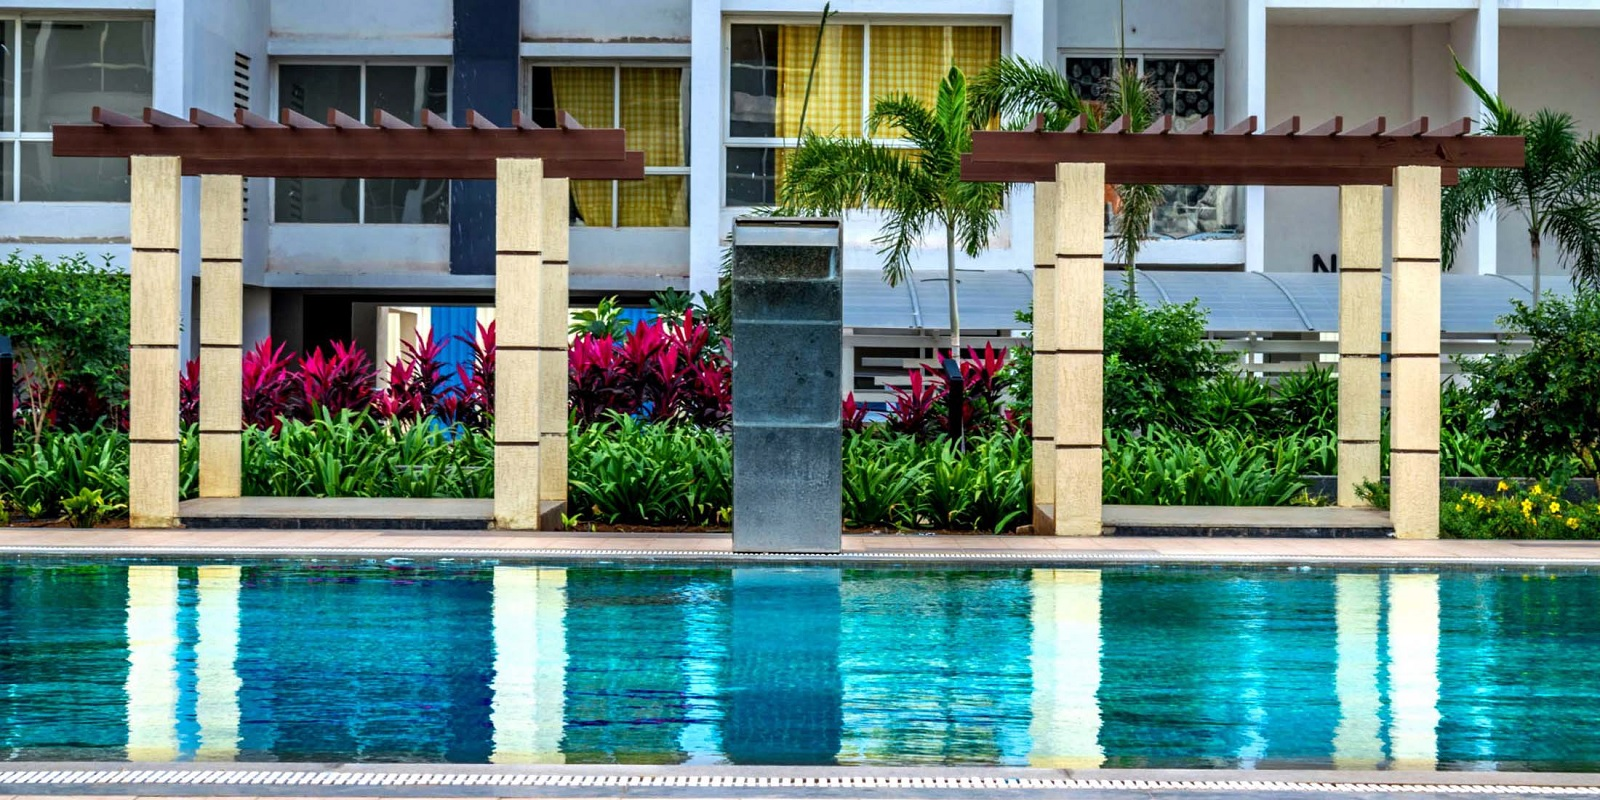 amenities-features-Picture-marvel-fria-phase-2-2461066